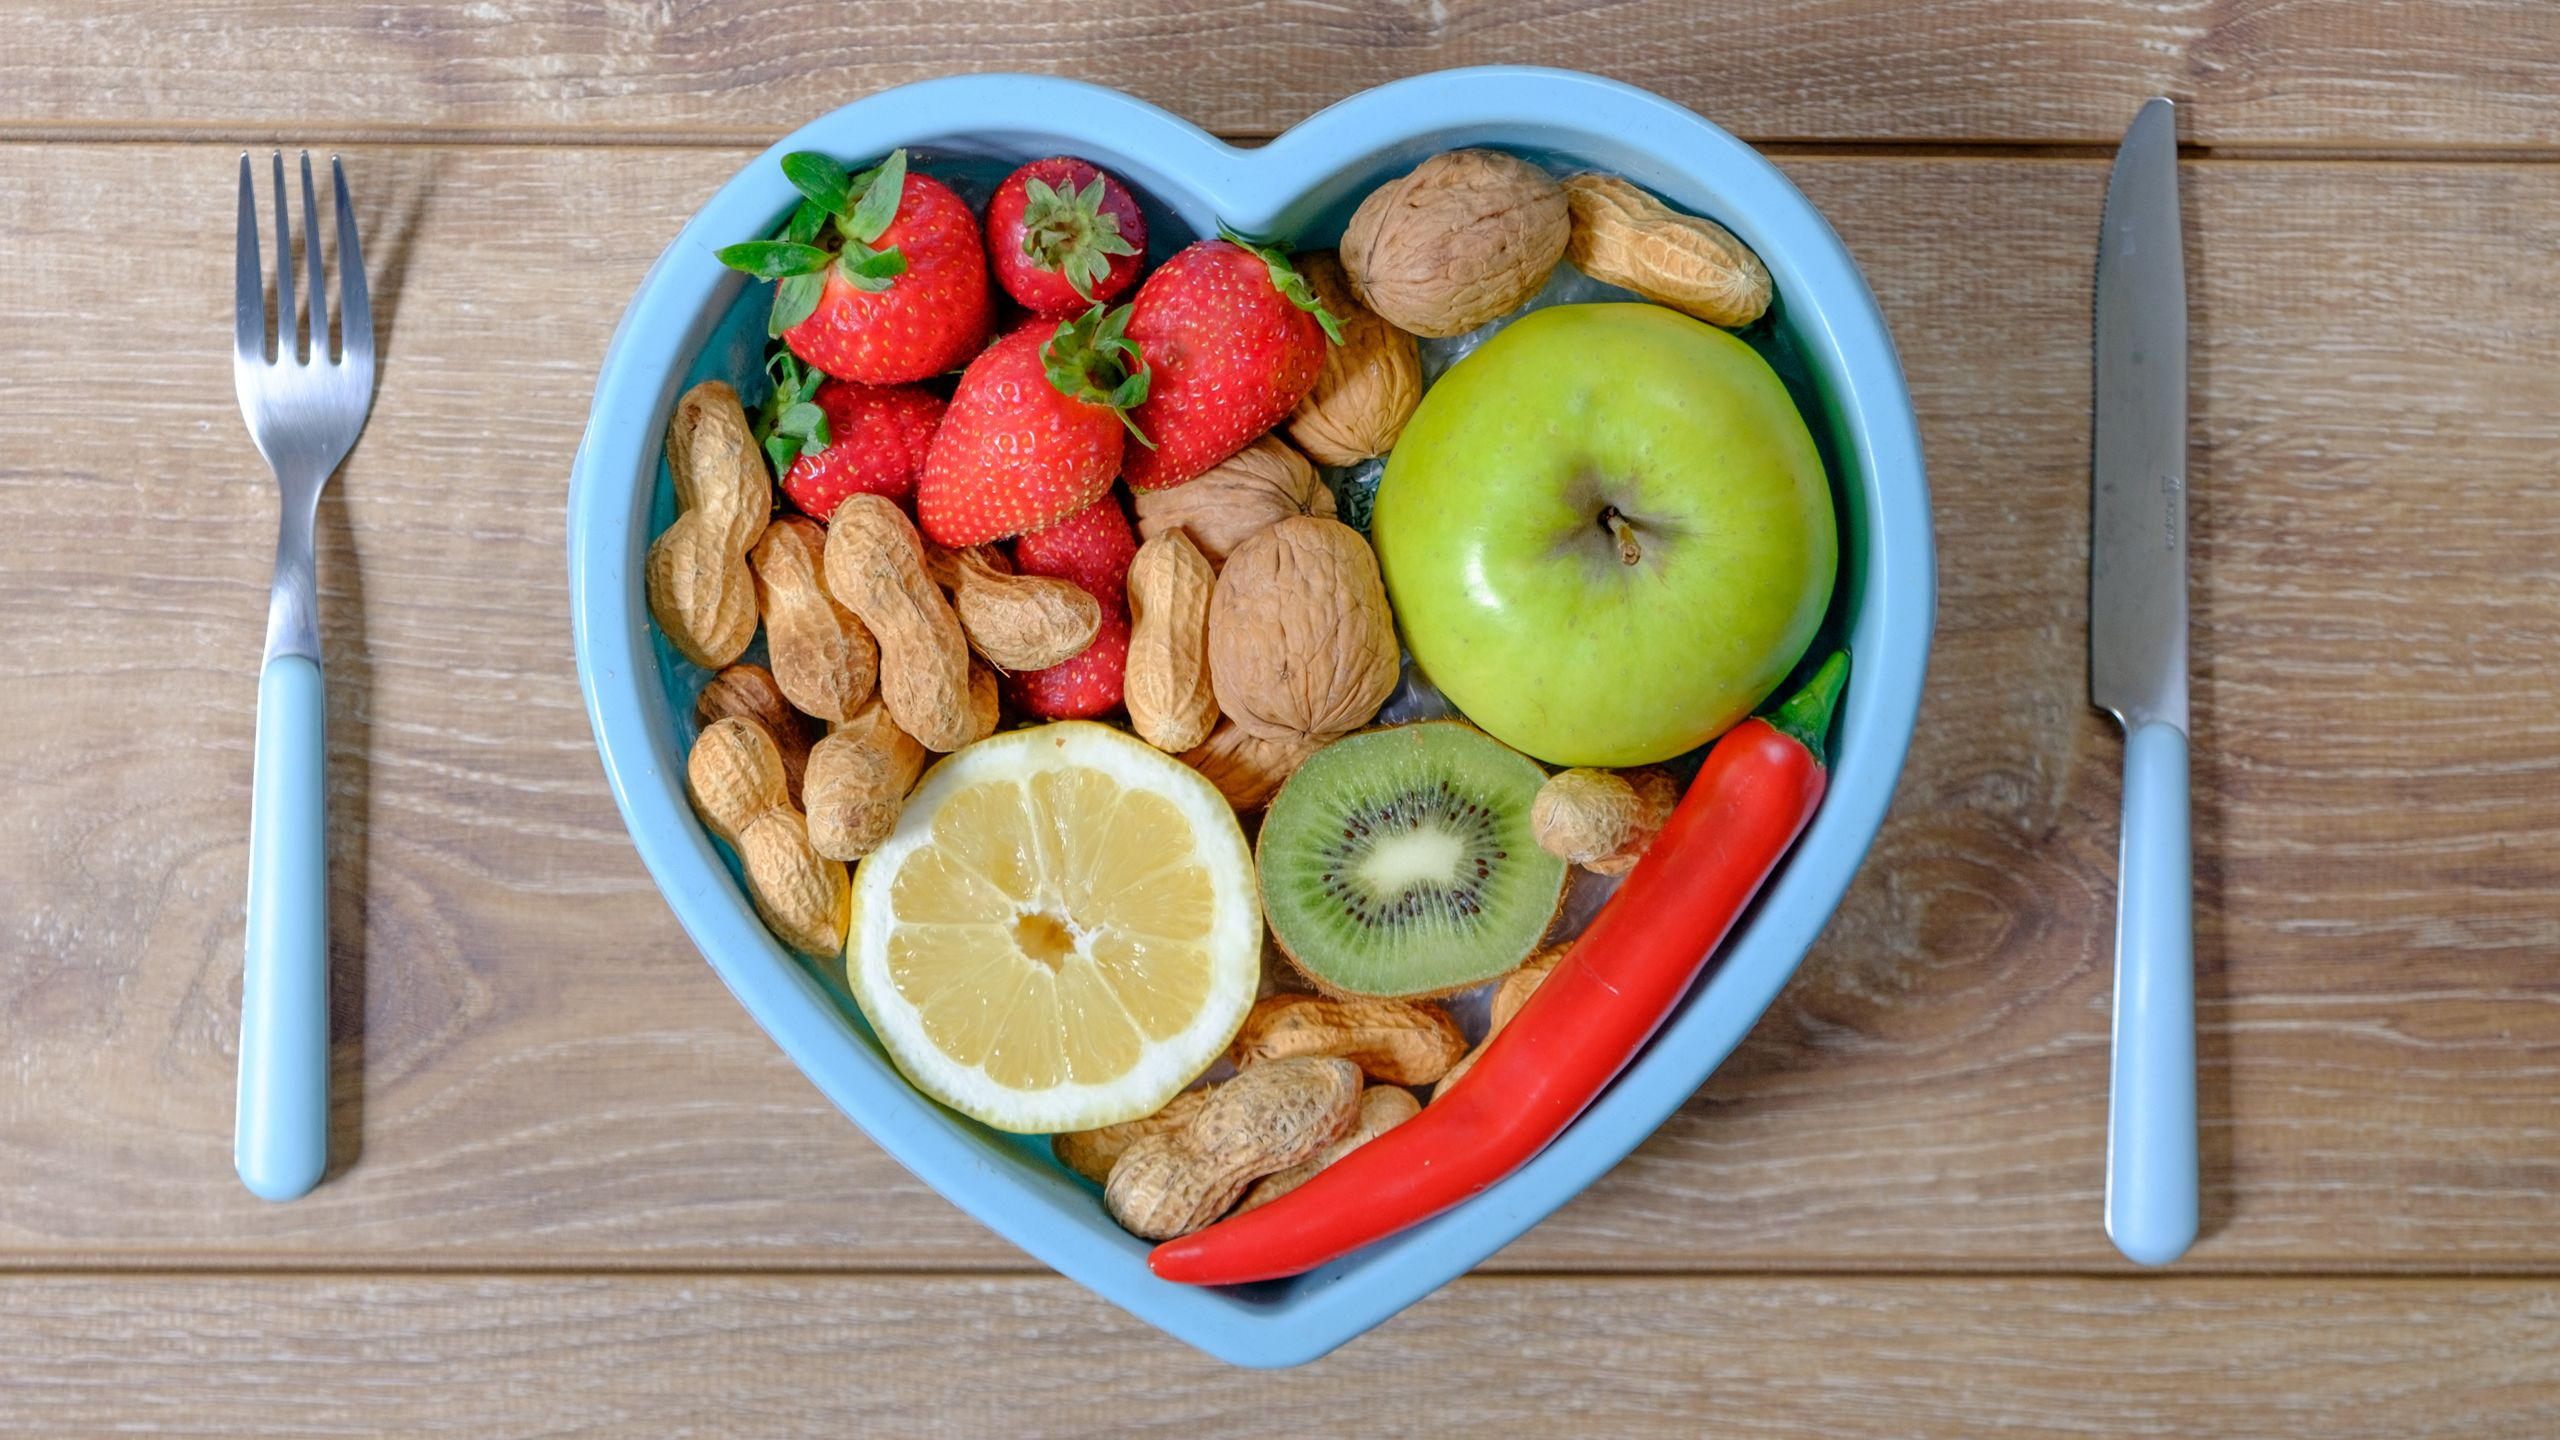 6 Foods for Better Heart Health